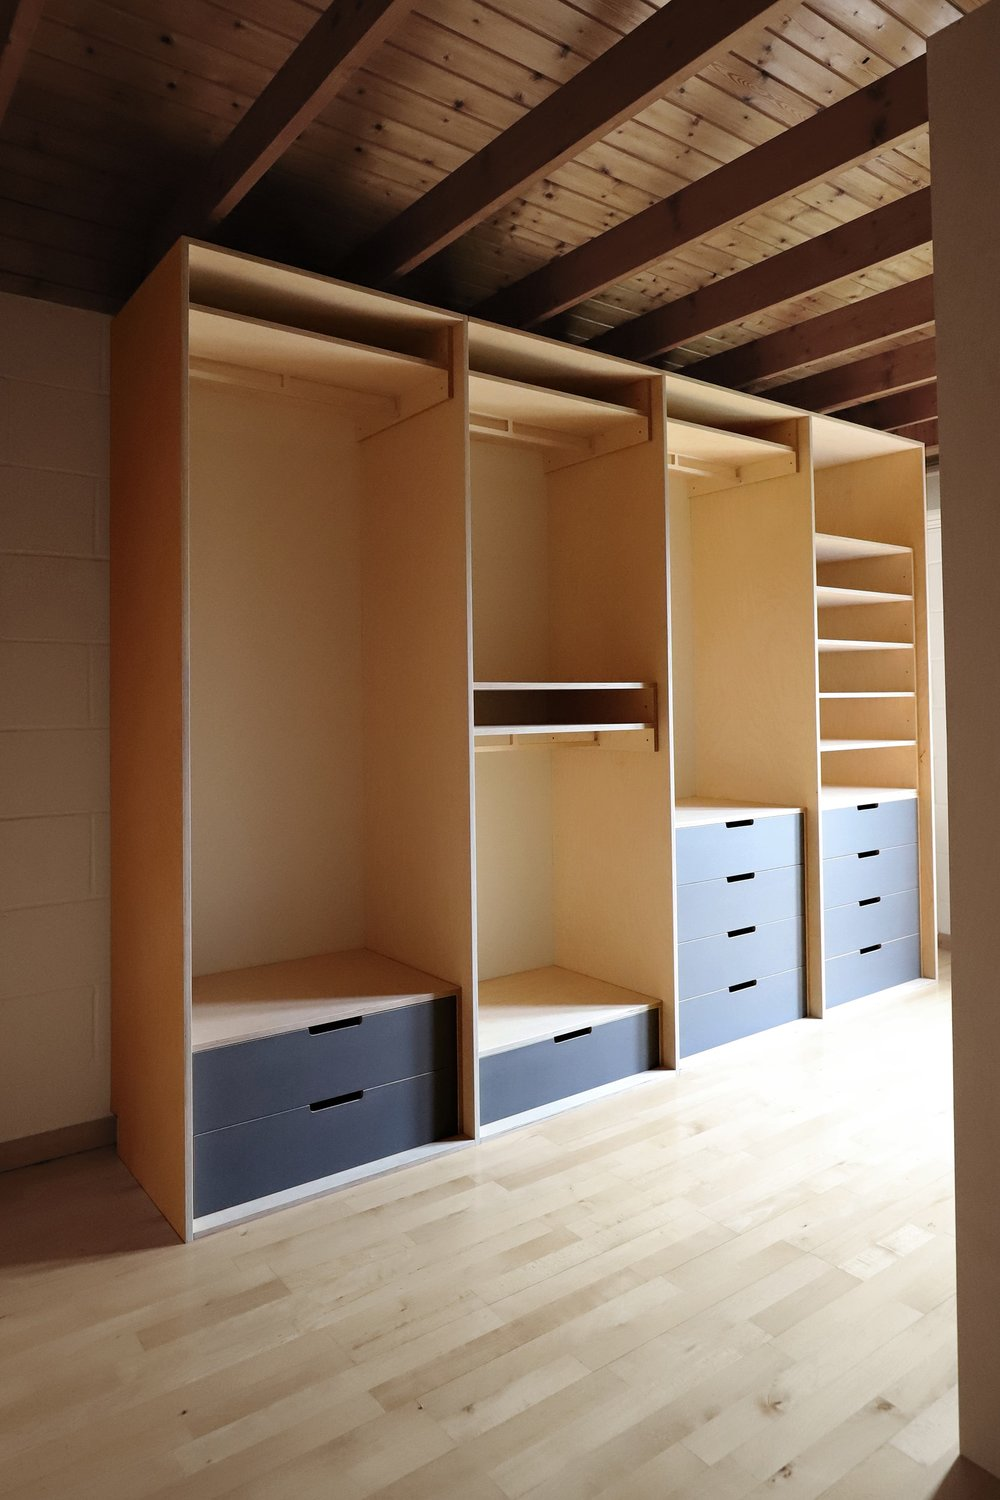 Samir's large plywood wardrobe, with two facing wardrobe sections.